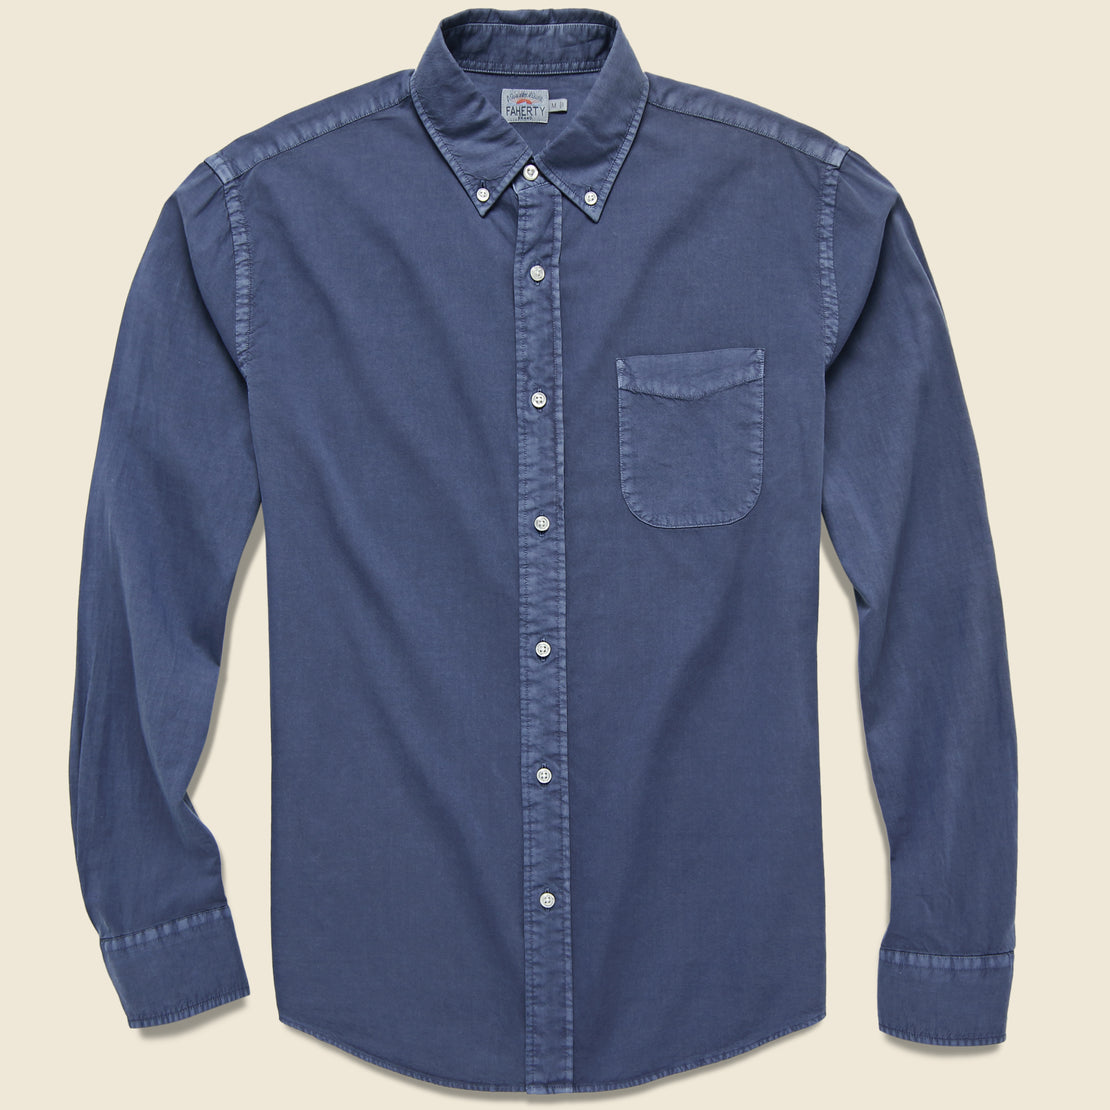 Faherty Garment Dyed Poplin Shirt - Navy